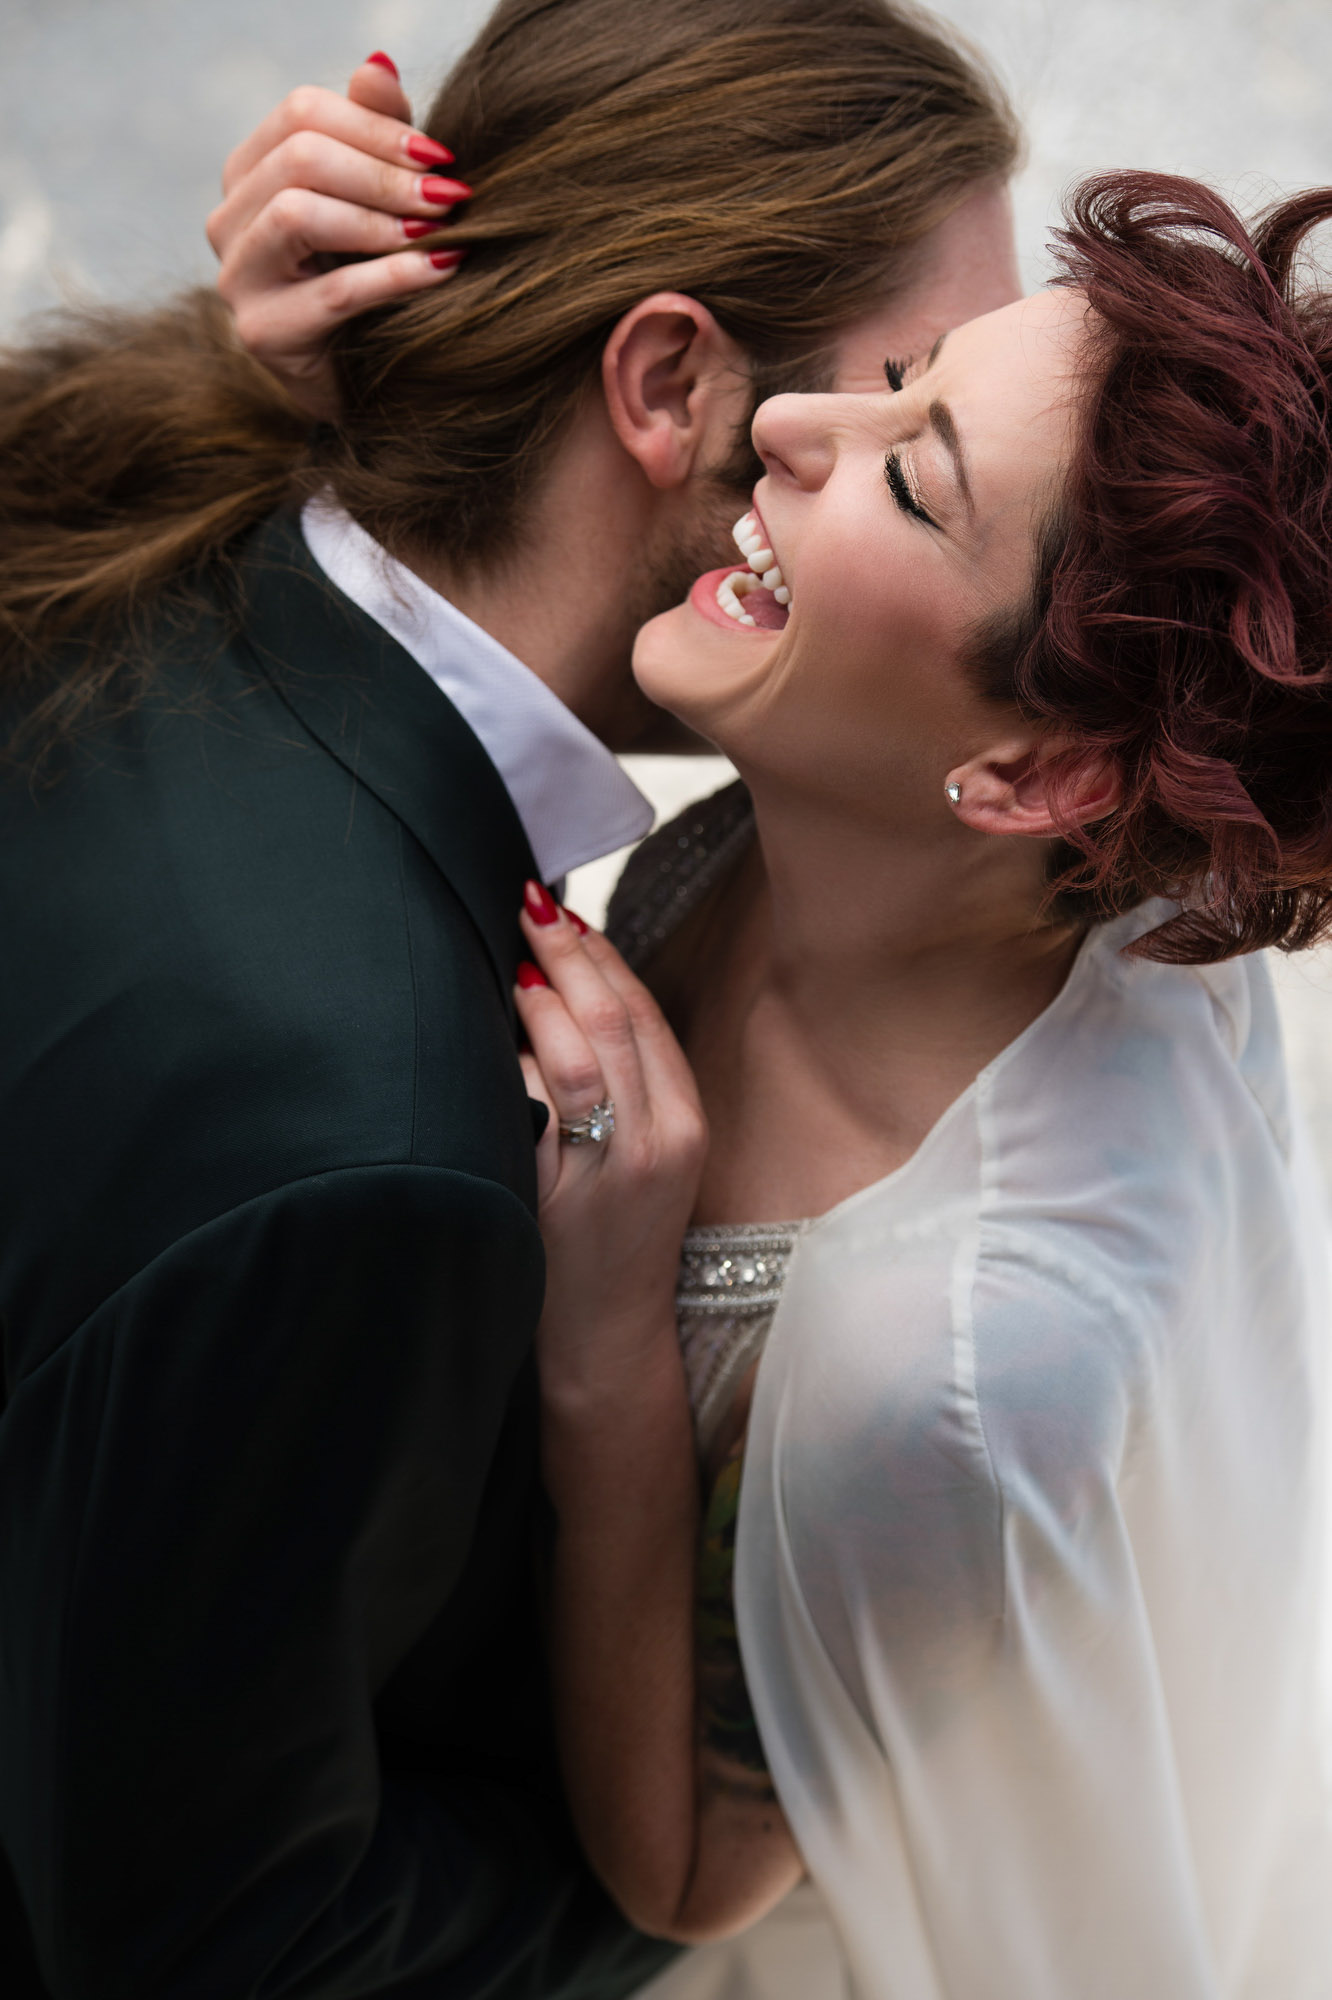 red-haired-bride-laughs-with-joy-while-embracing-groom-best-wedding-photos-jerry-ghionis-top-las-vegas-photographer